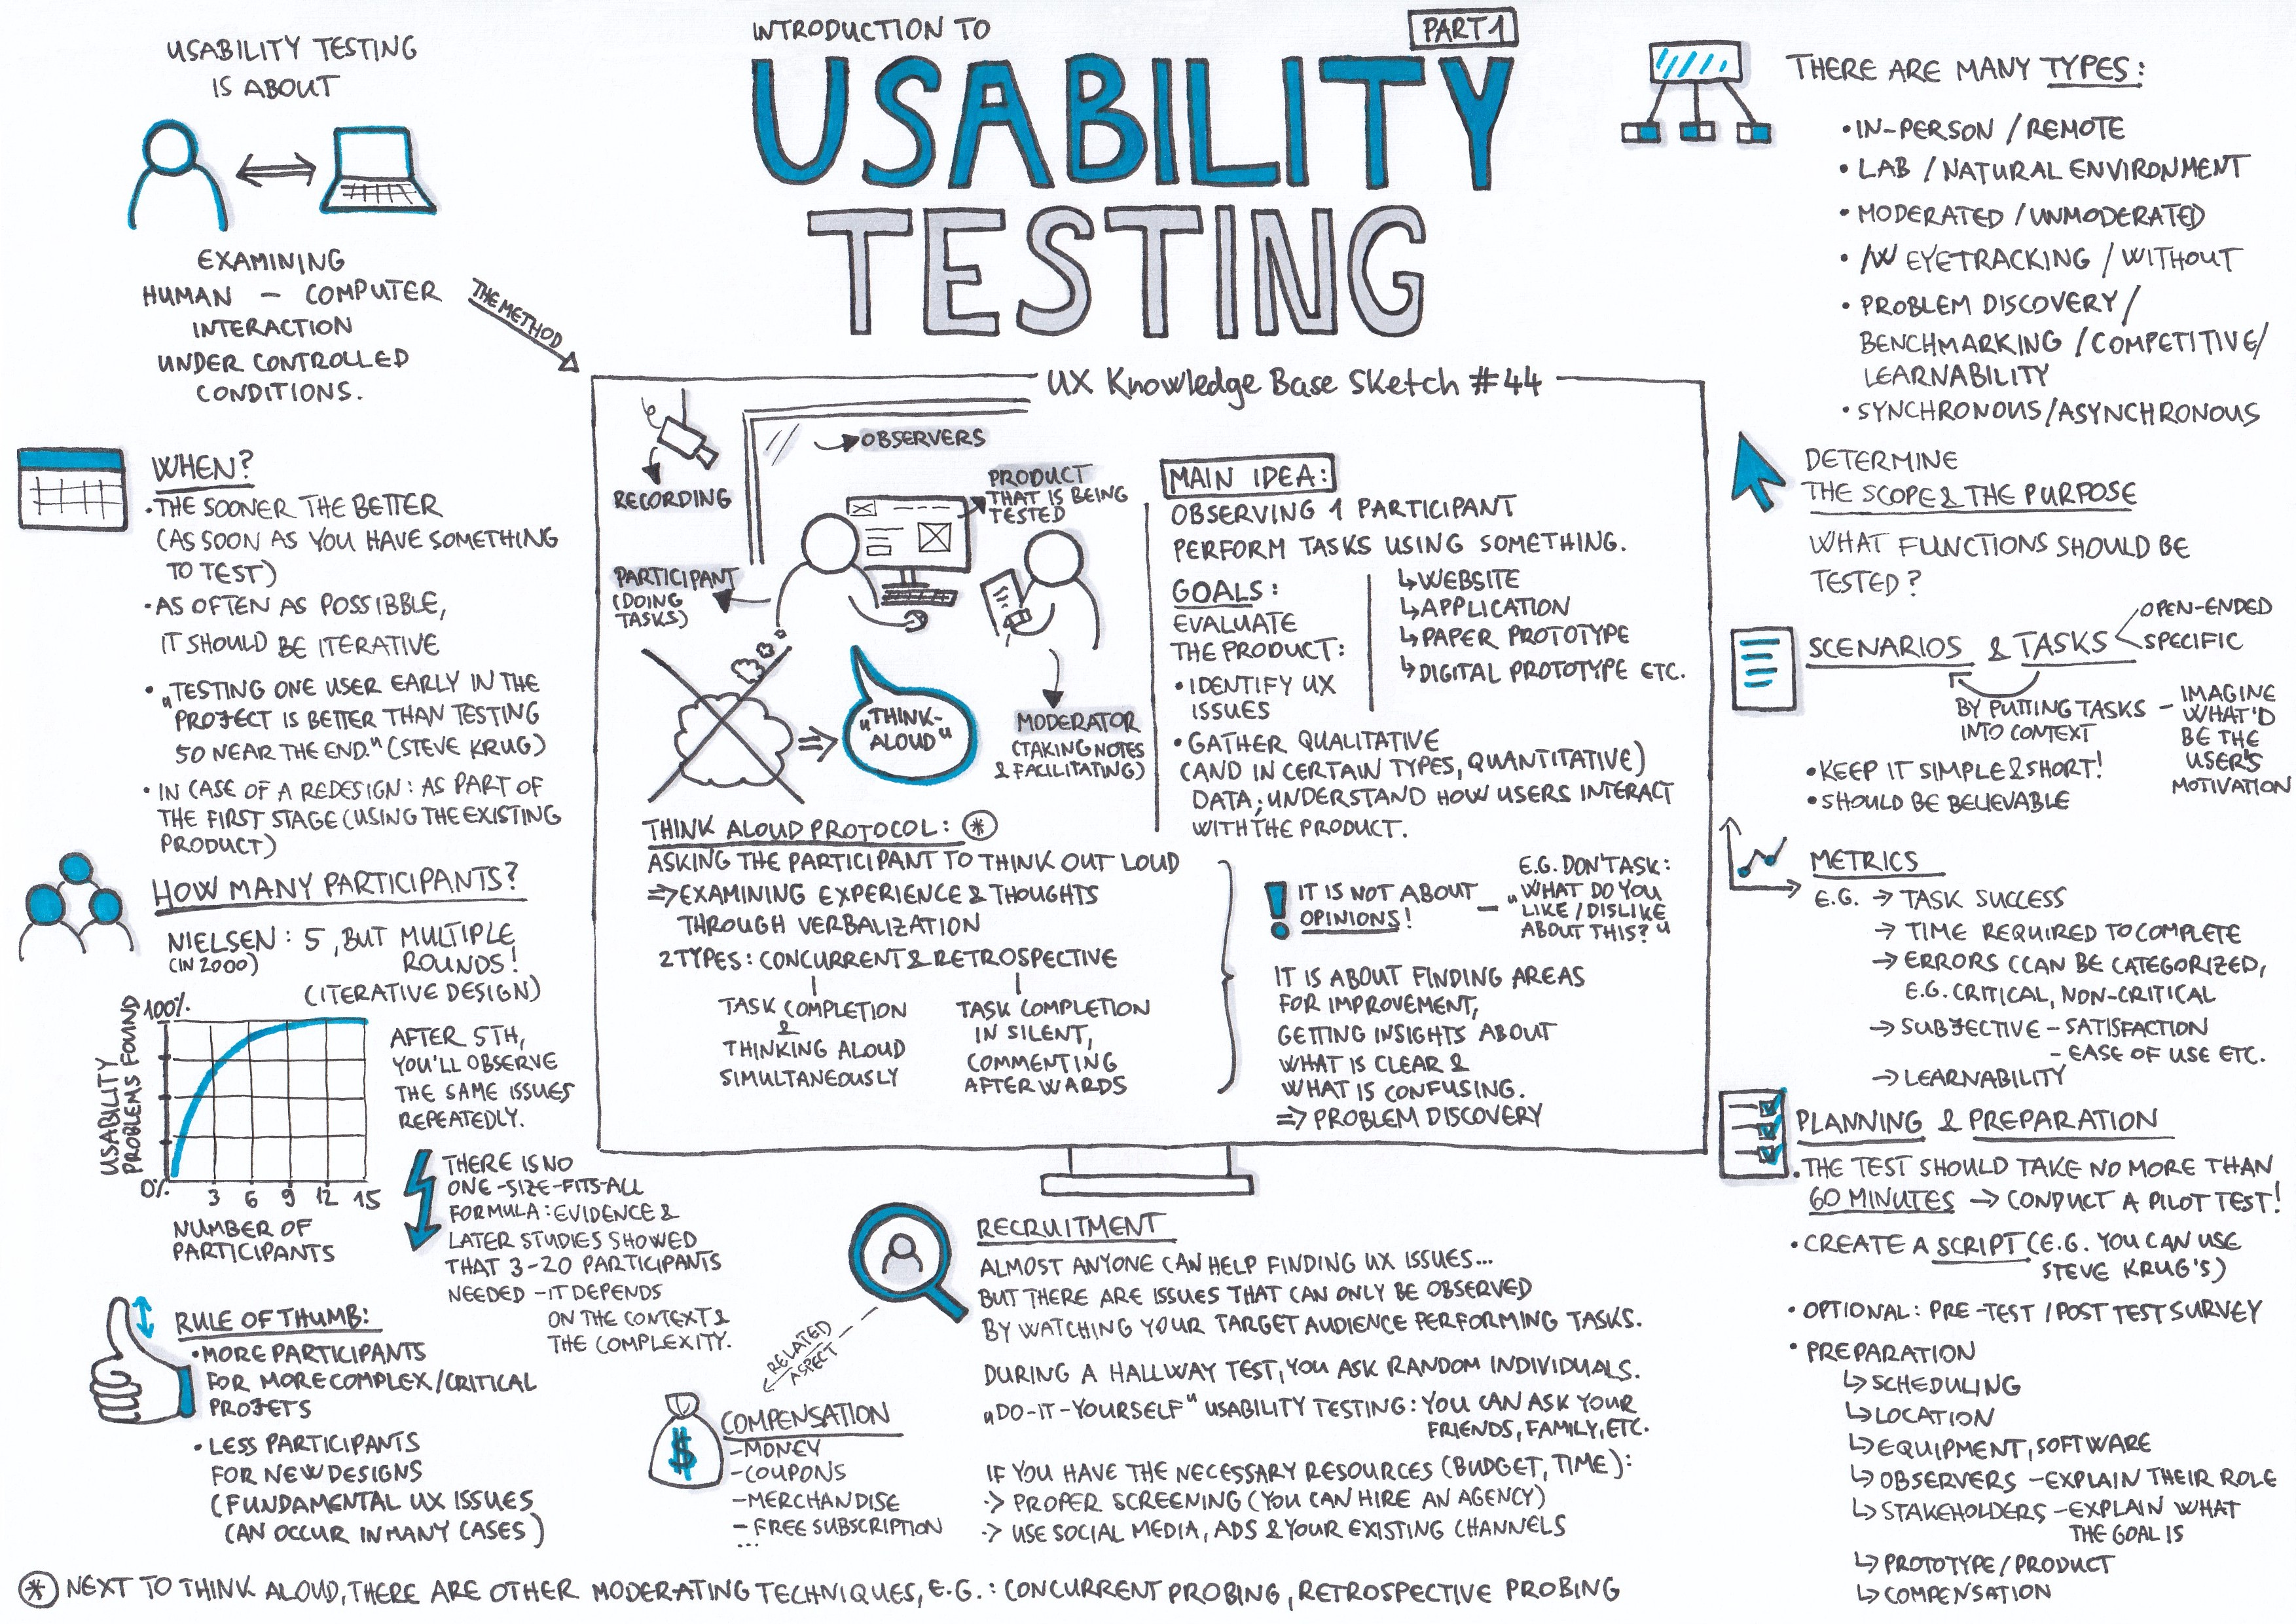 Usability Testing — Part 1 - UX Knowledge Base Sketch